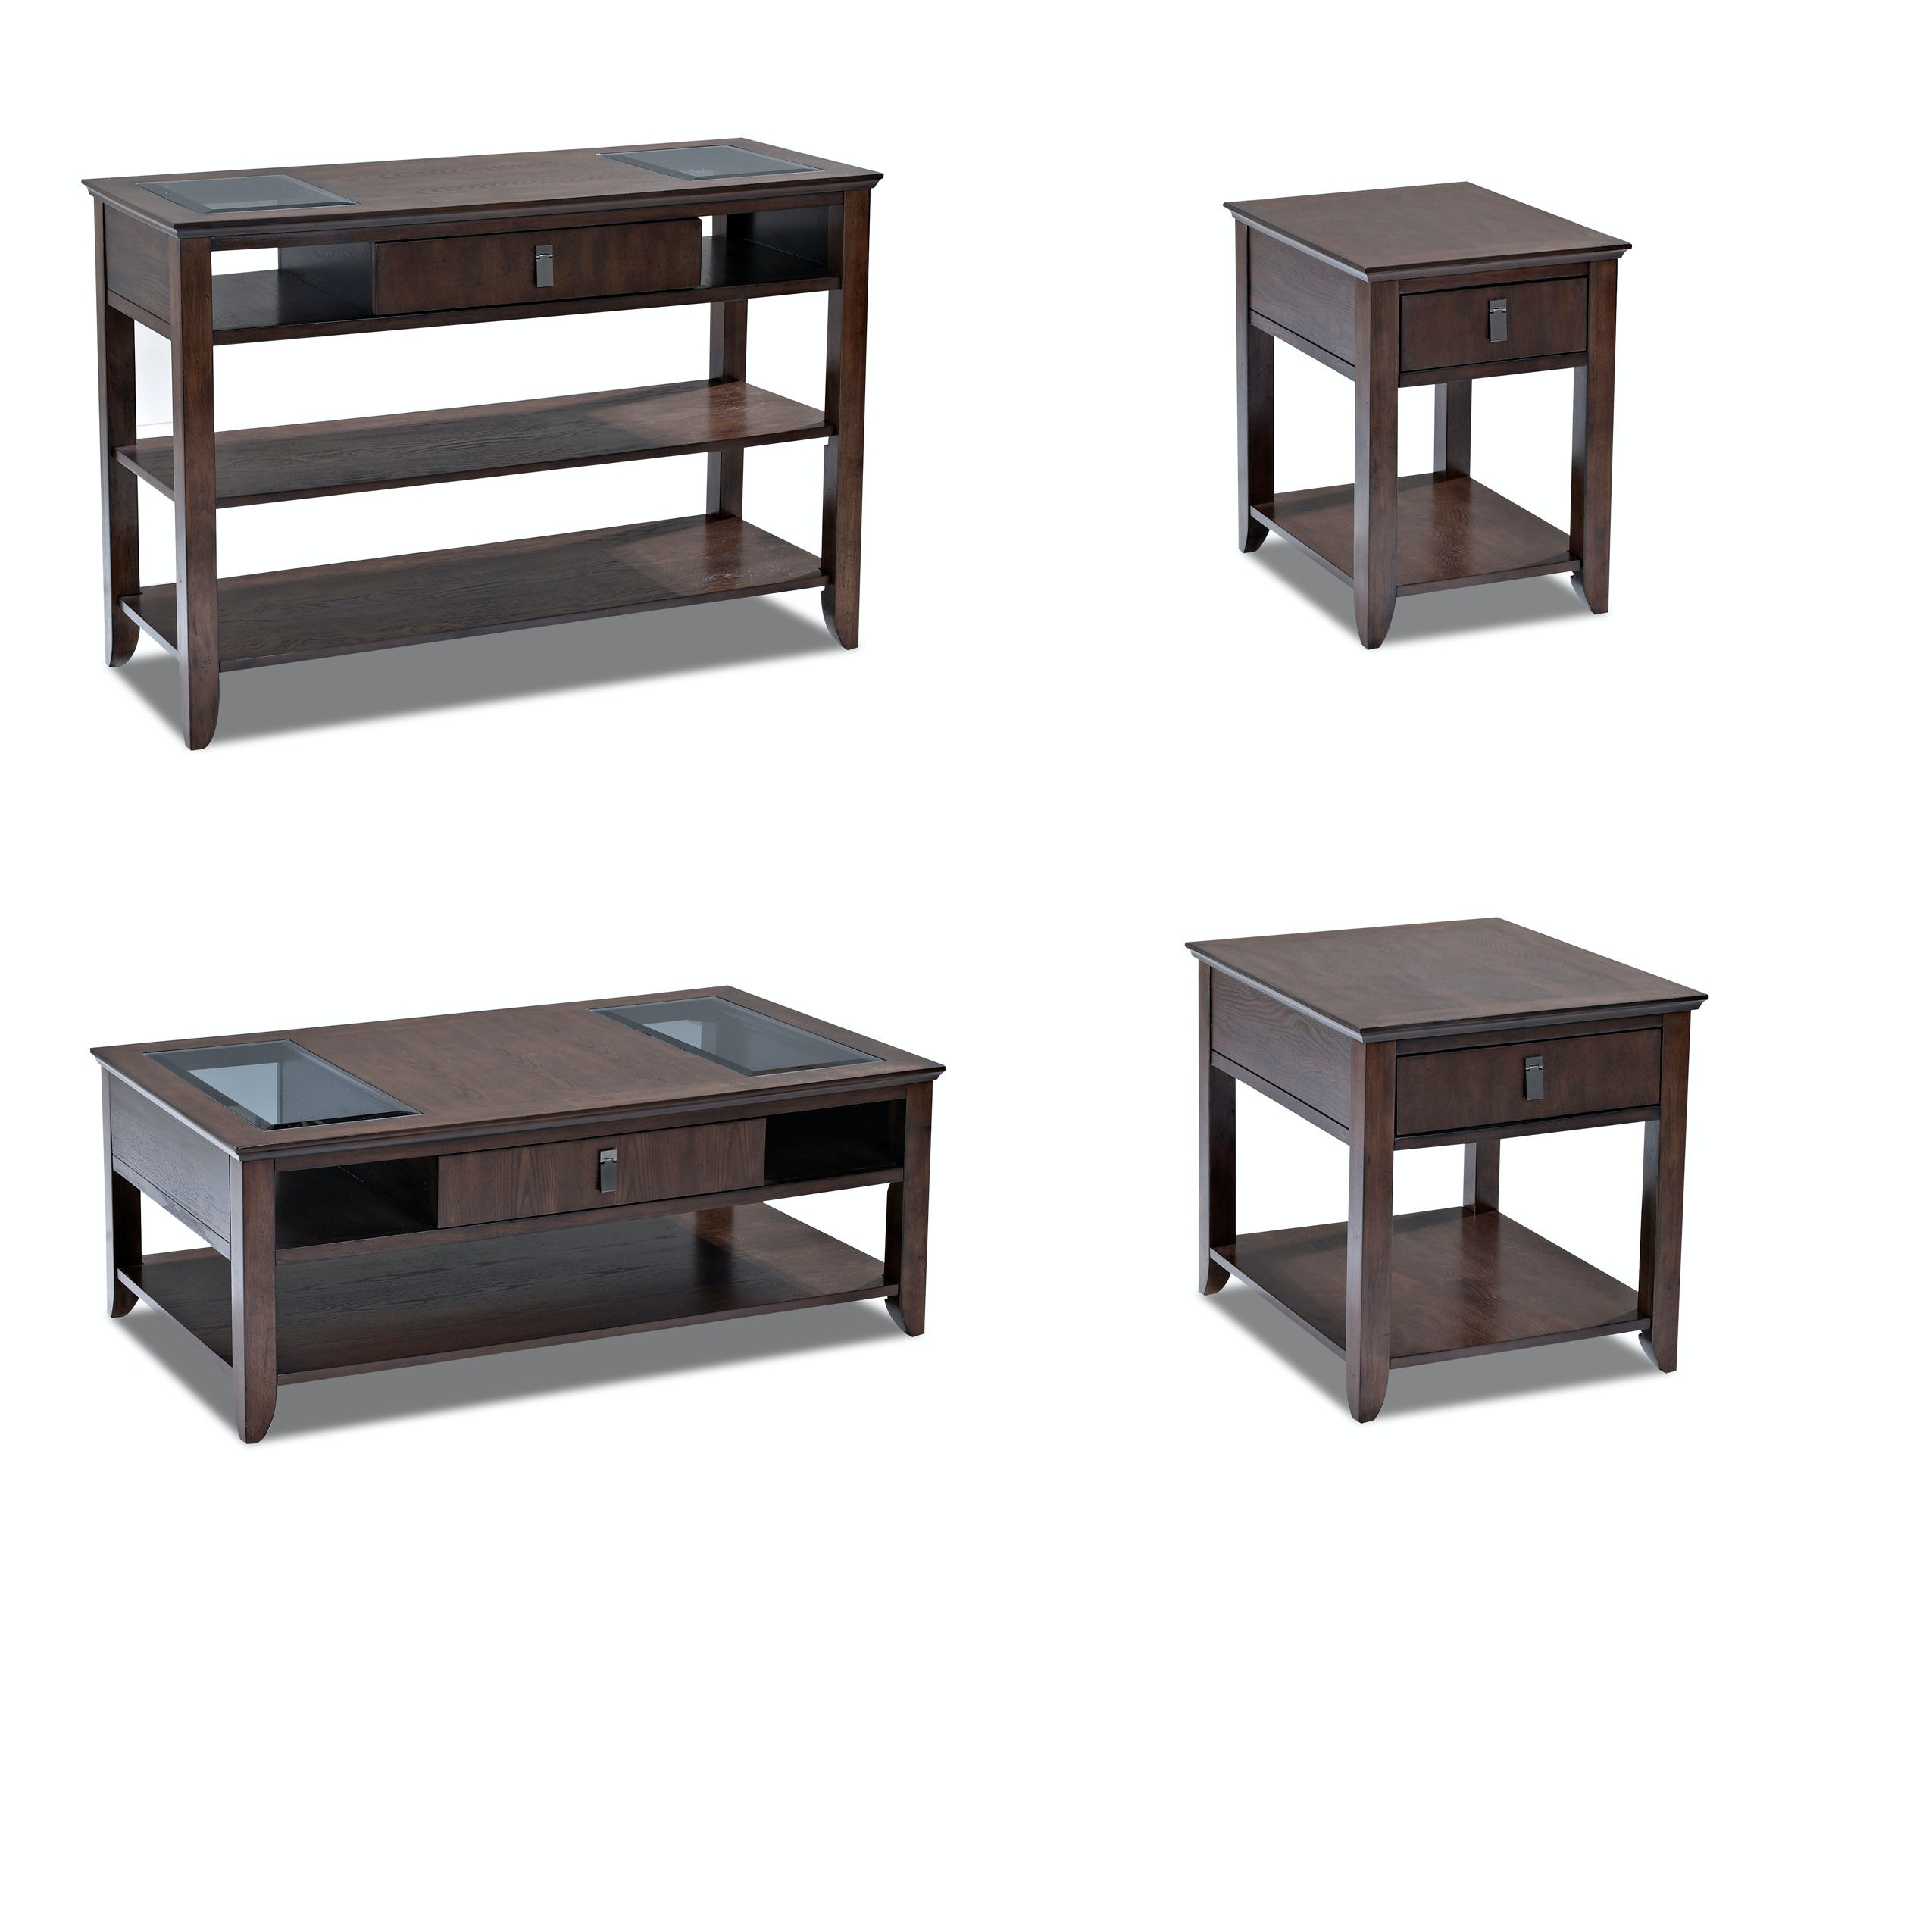 Klaussner International Living Room Park Row End Table 918